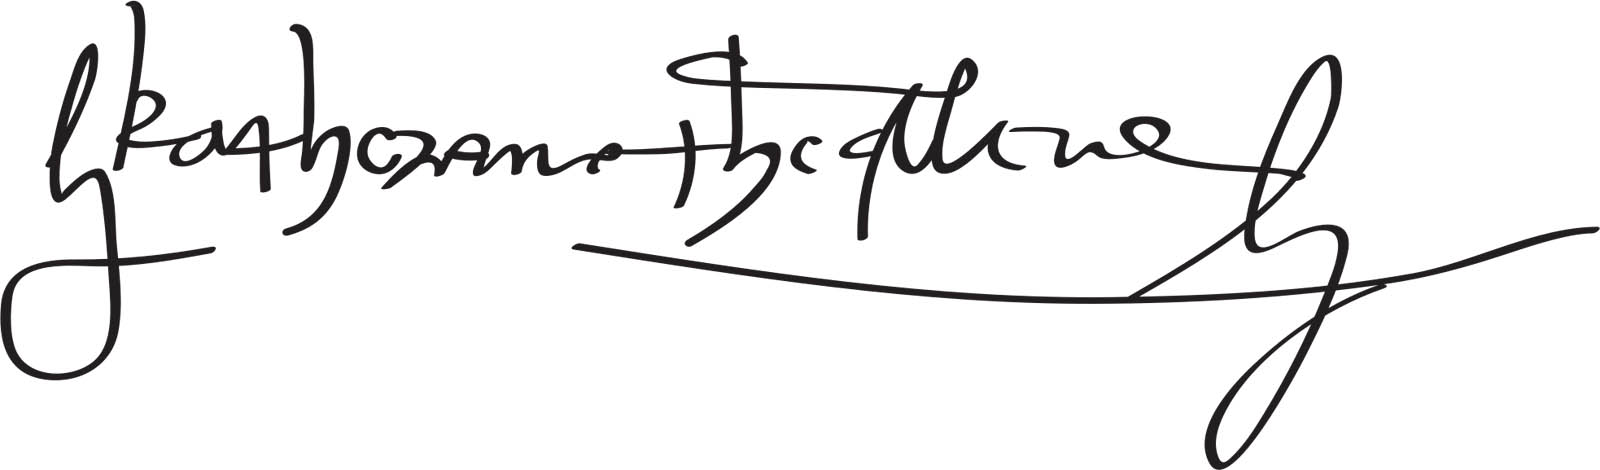 Catherine of Aragon_signature